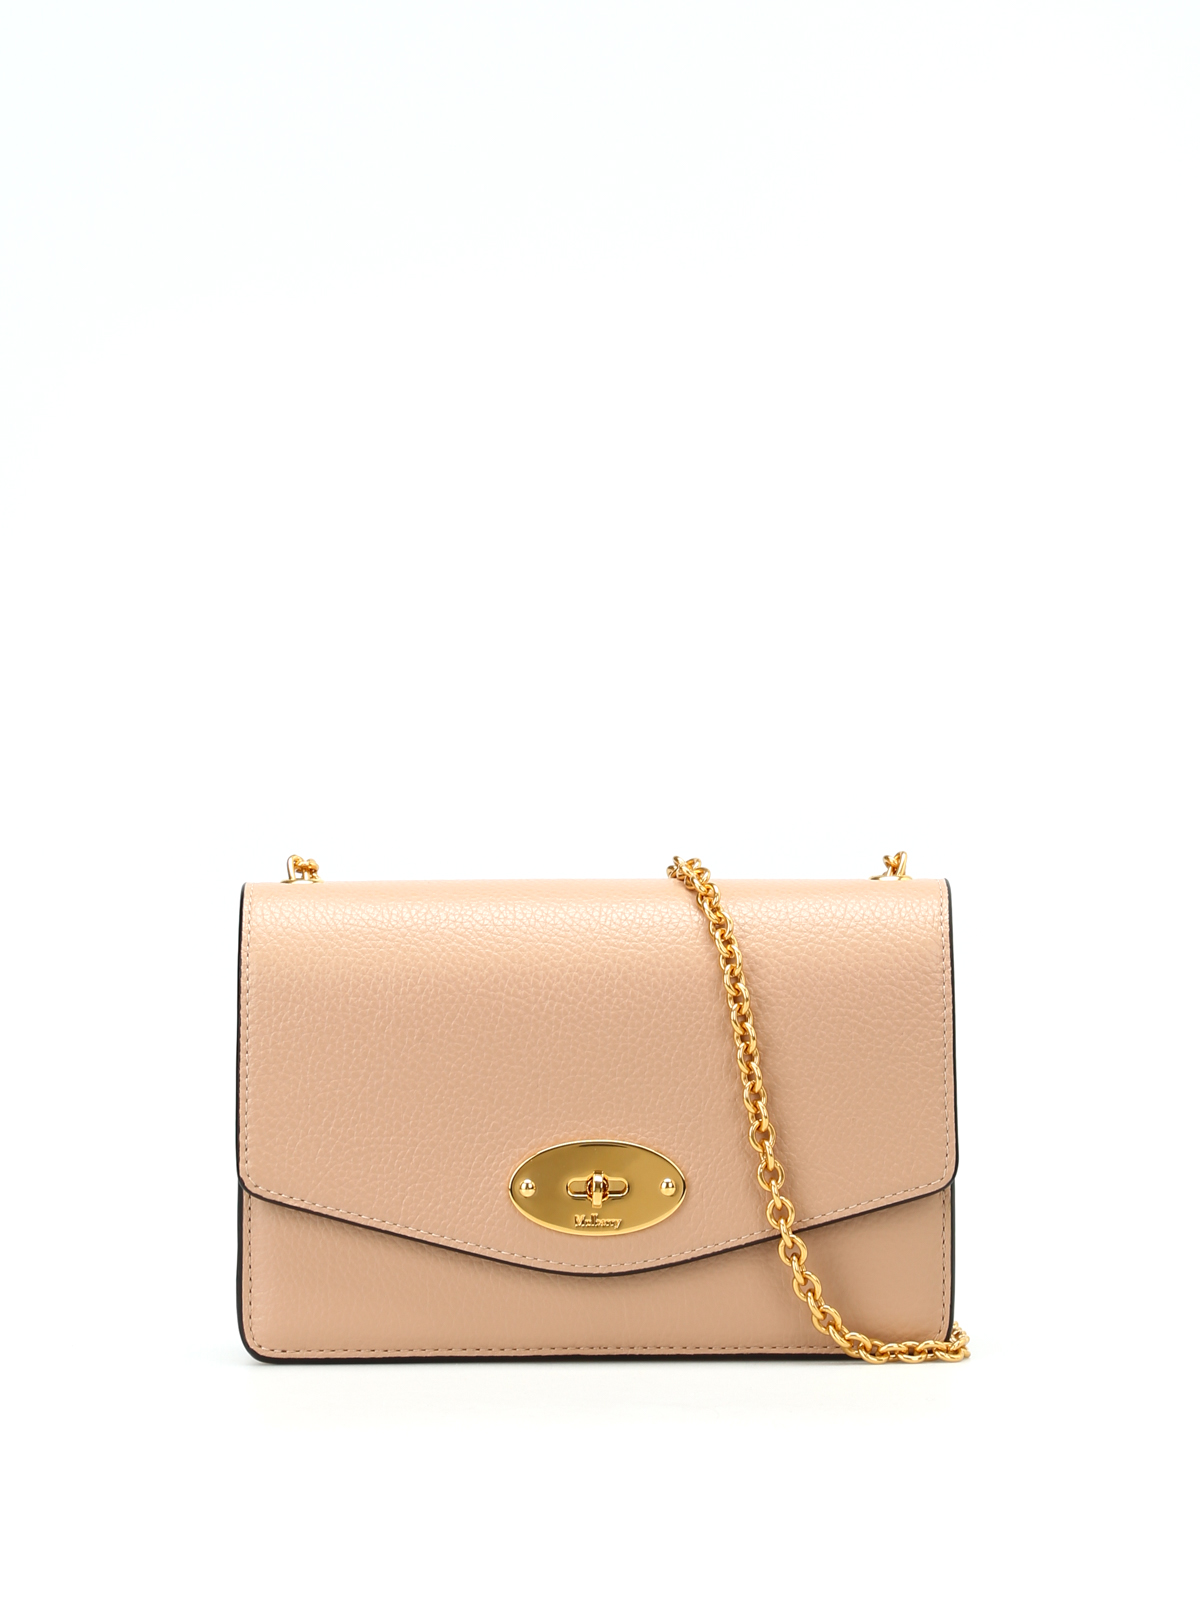 6542f1ce6d Mulberry - Small Darley leather cross body bag - cross body bags ...